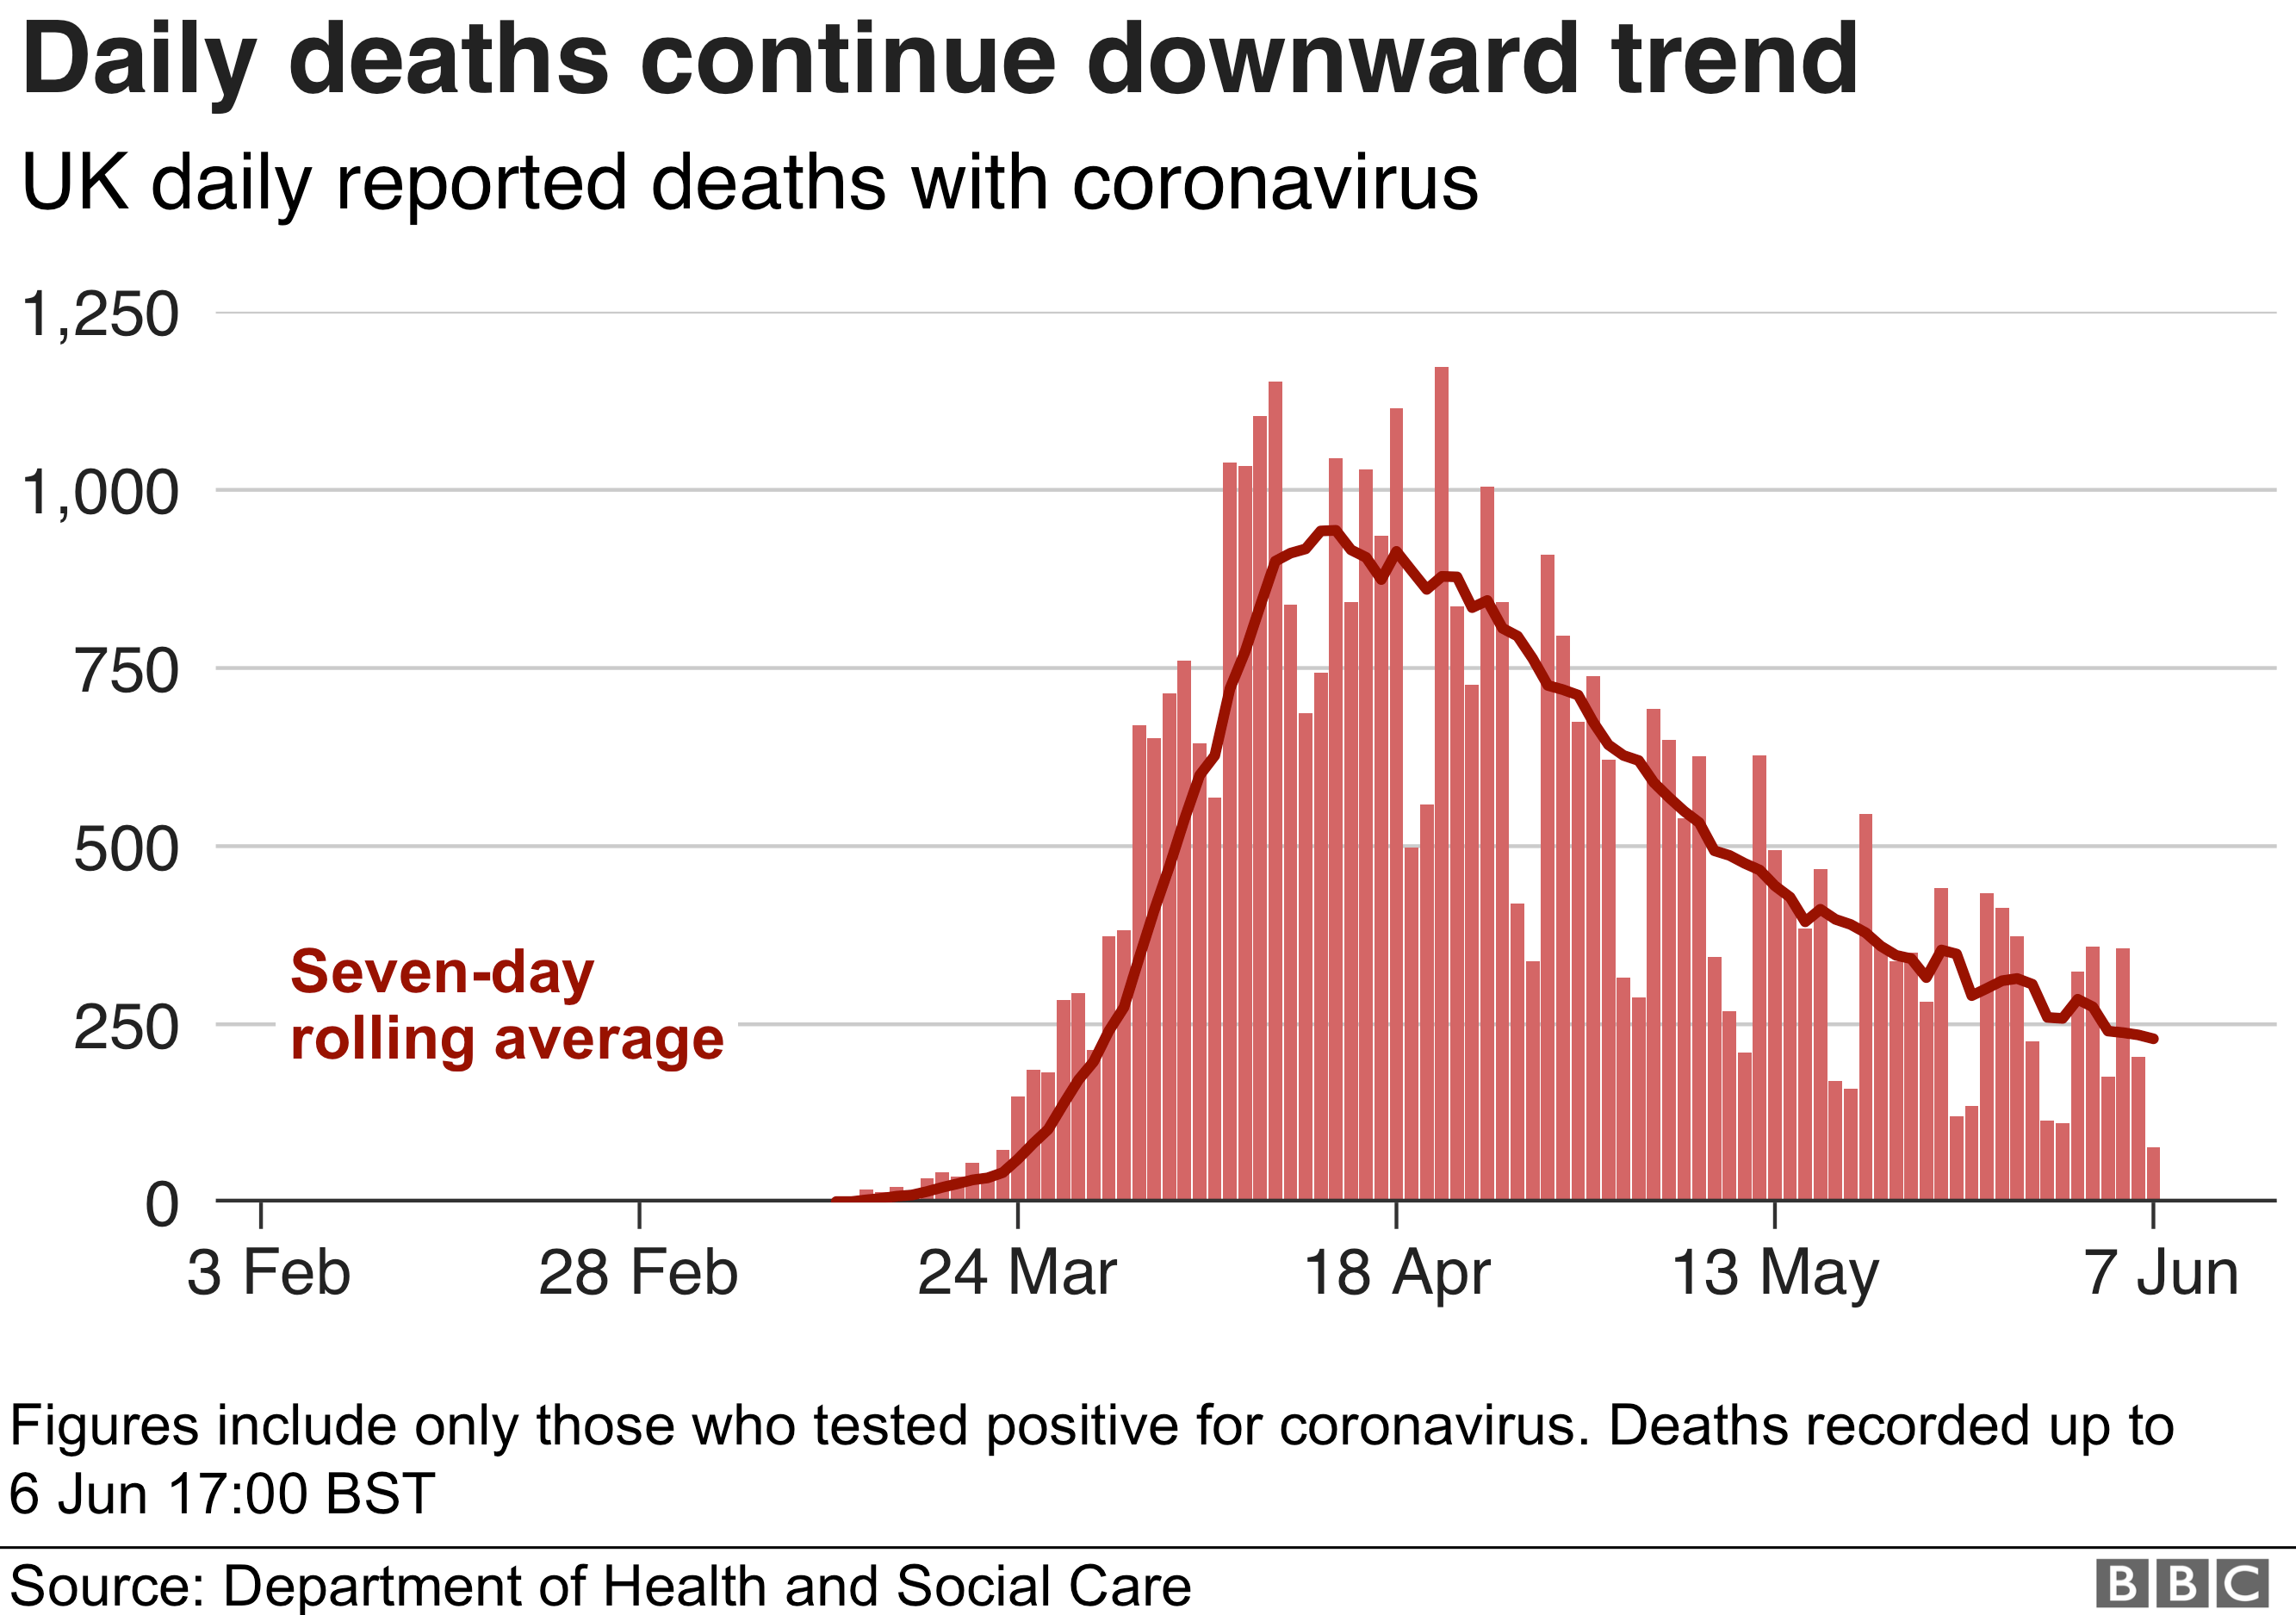 Graph of daily coronavirus deaths in the UK